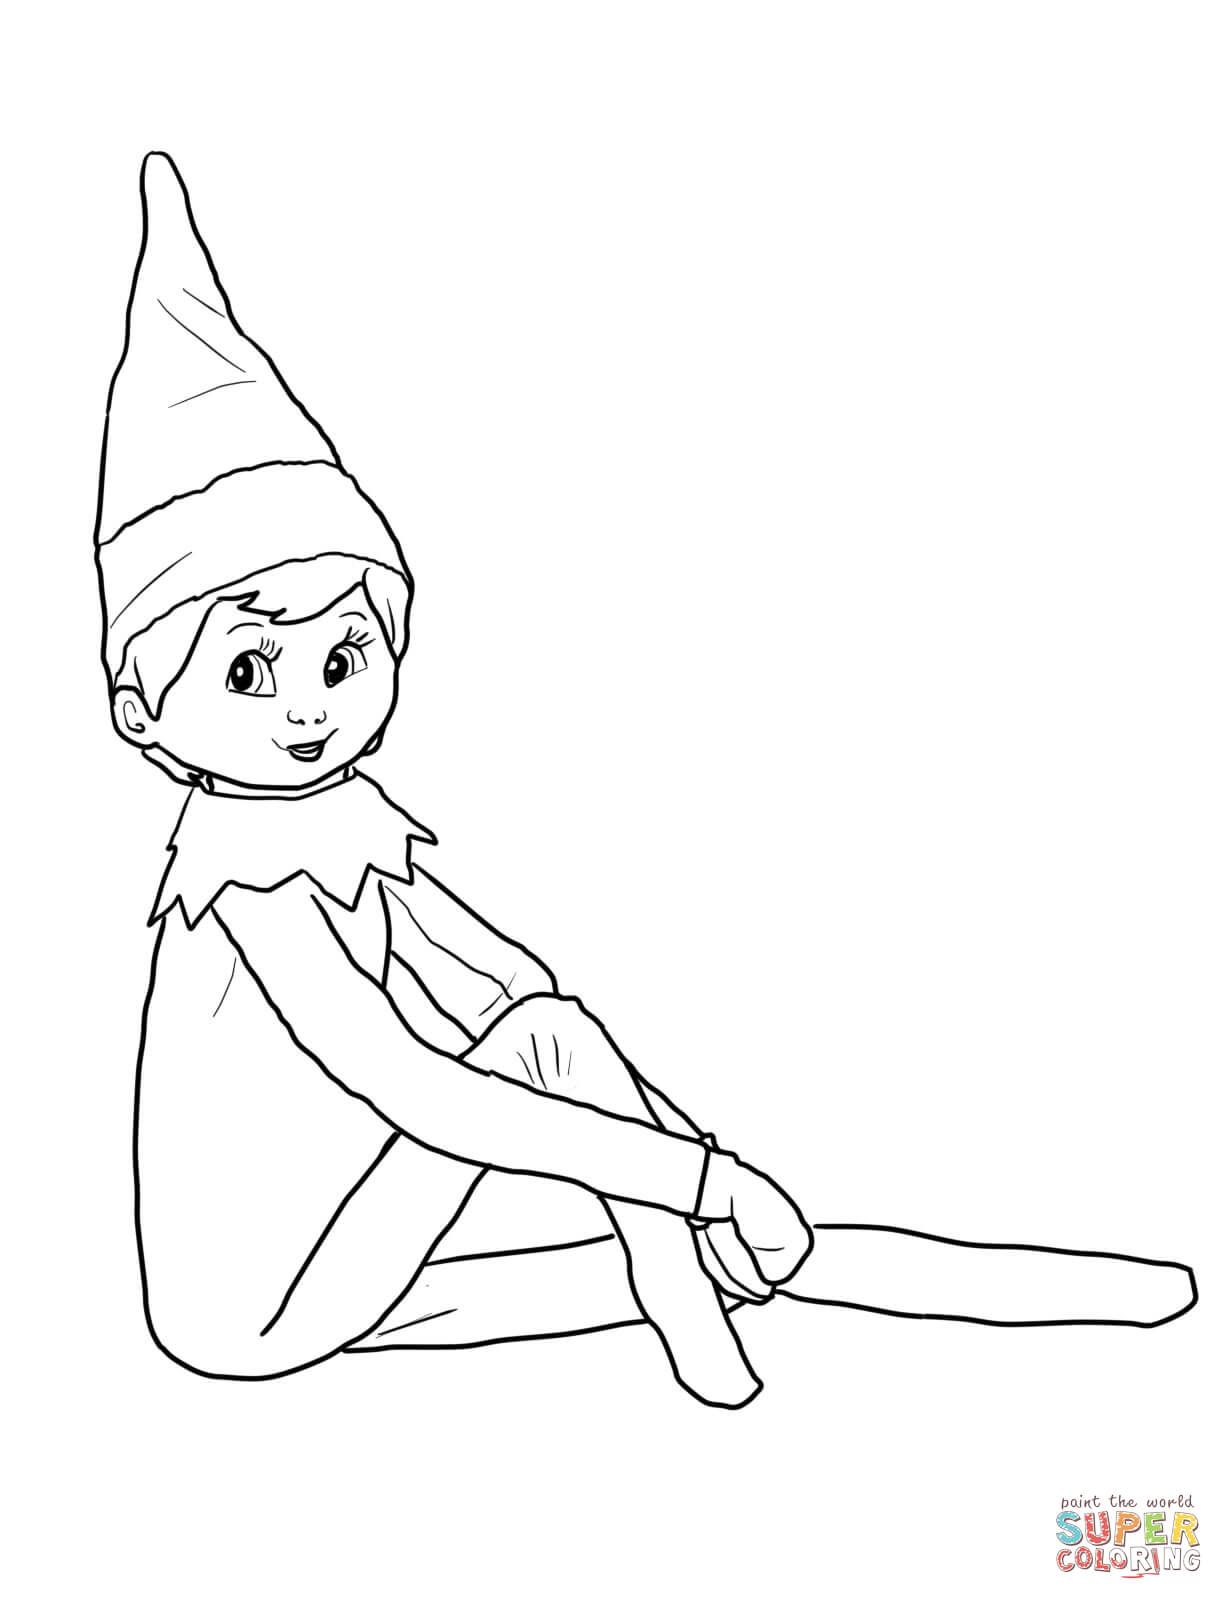 Elf On The Shelf Coloring Page From Elf On The Shelf Category Select From 27278 Printable Crafts Of Cartoons Christmas Elf Girl Elf Christmas Coloring Pages